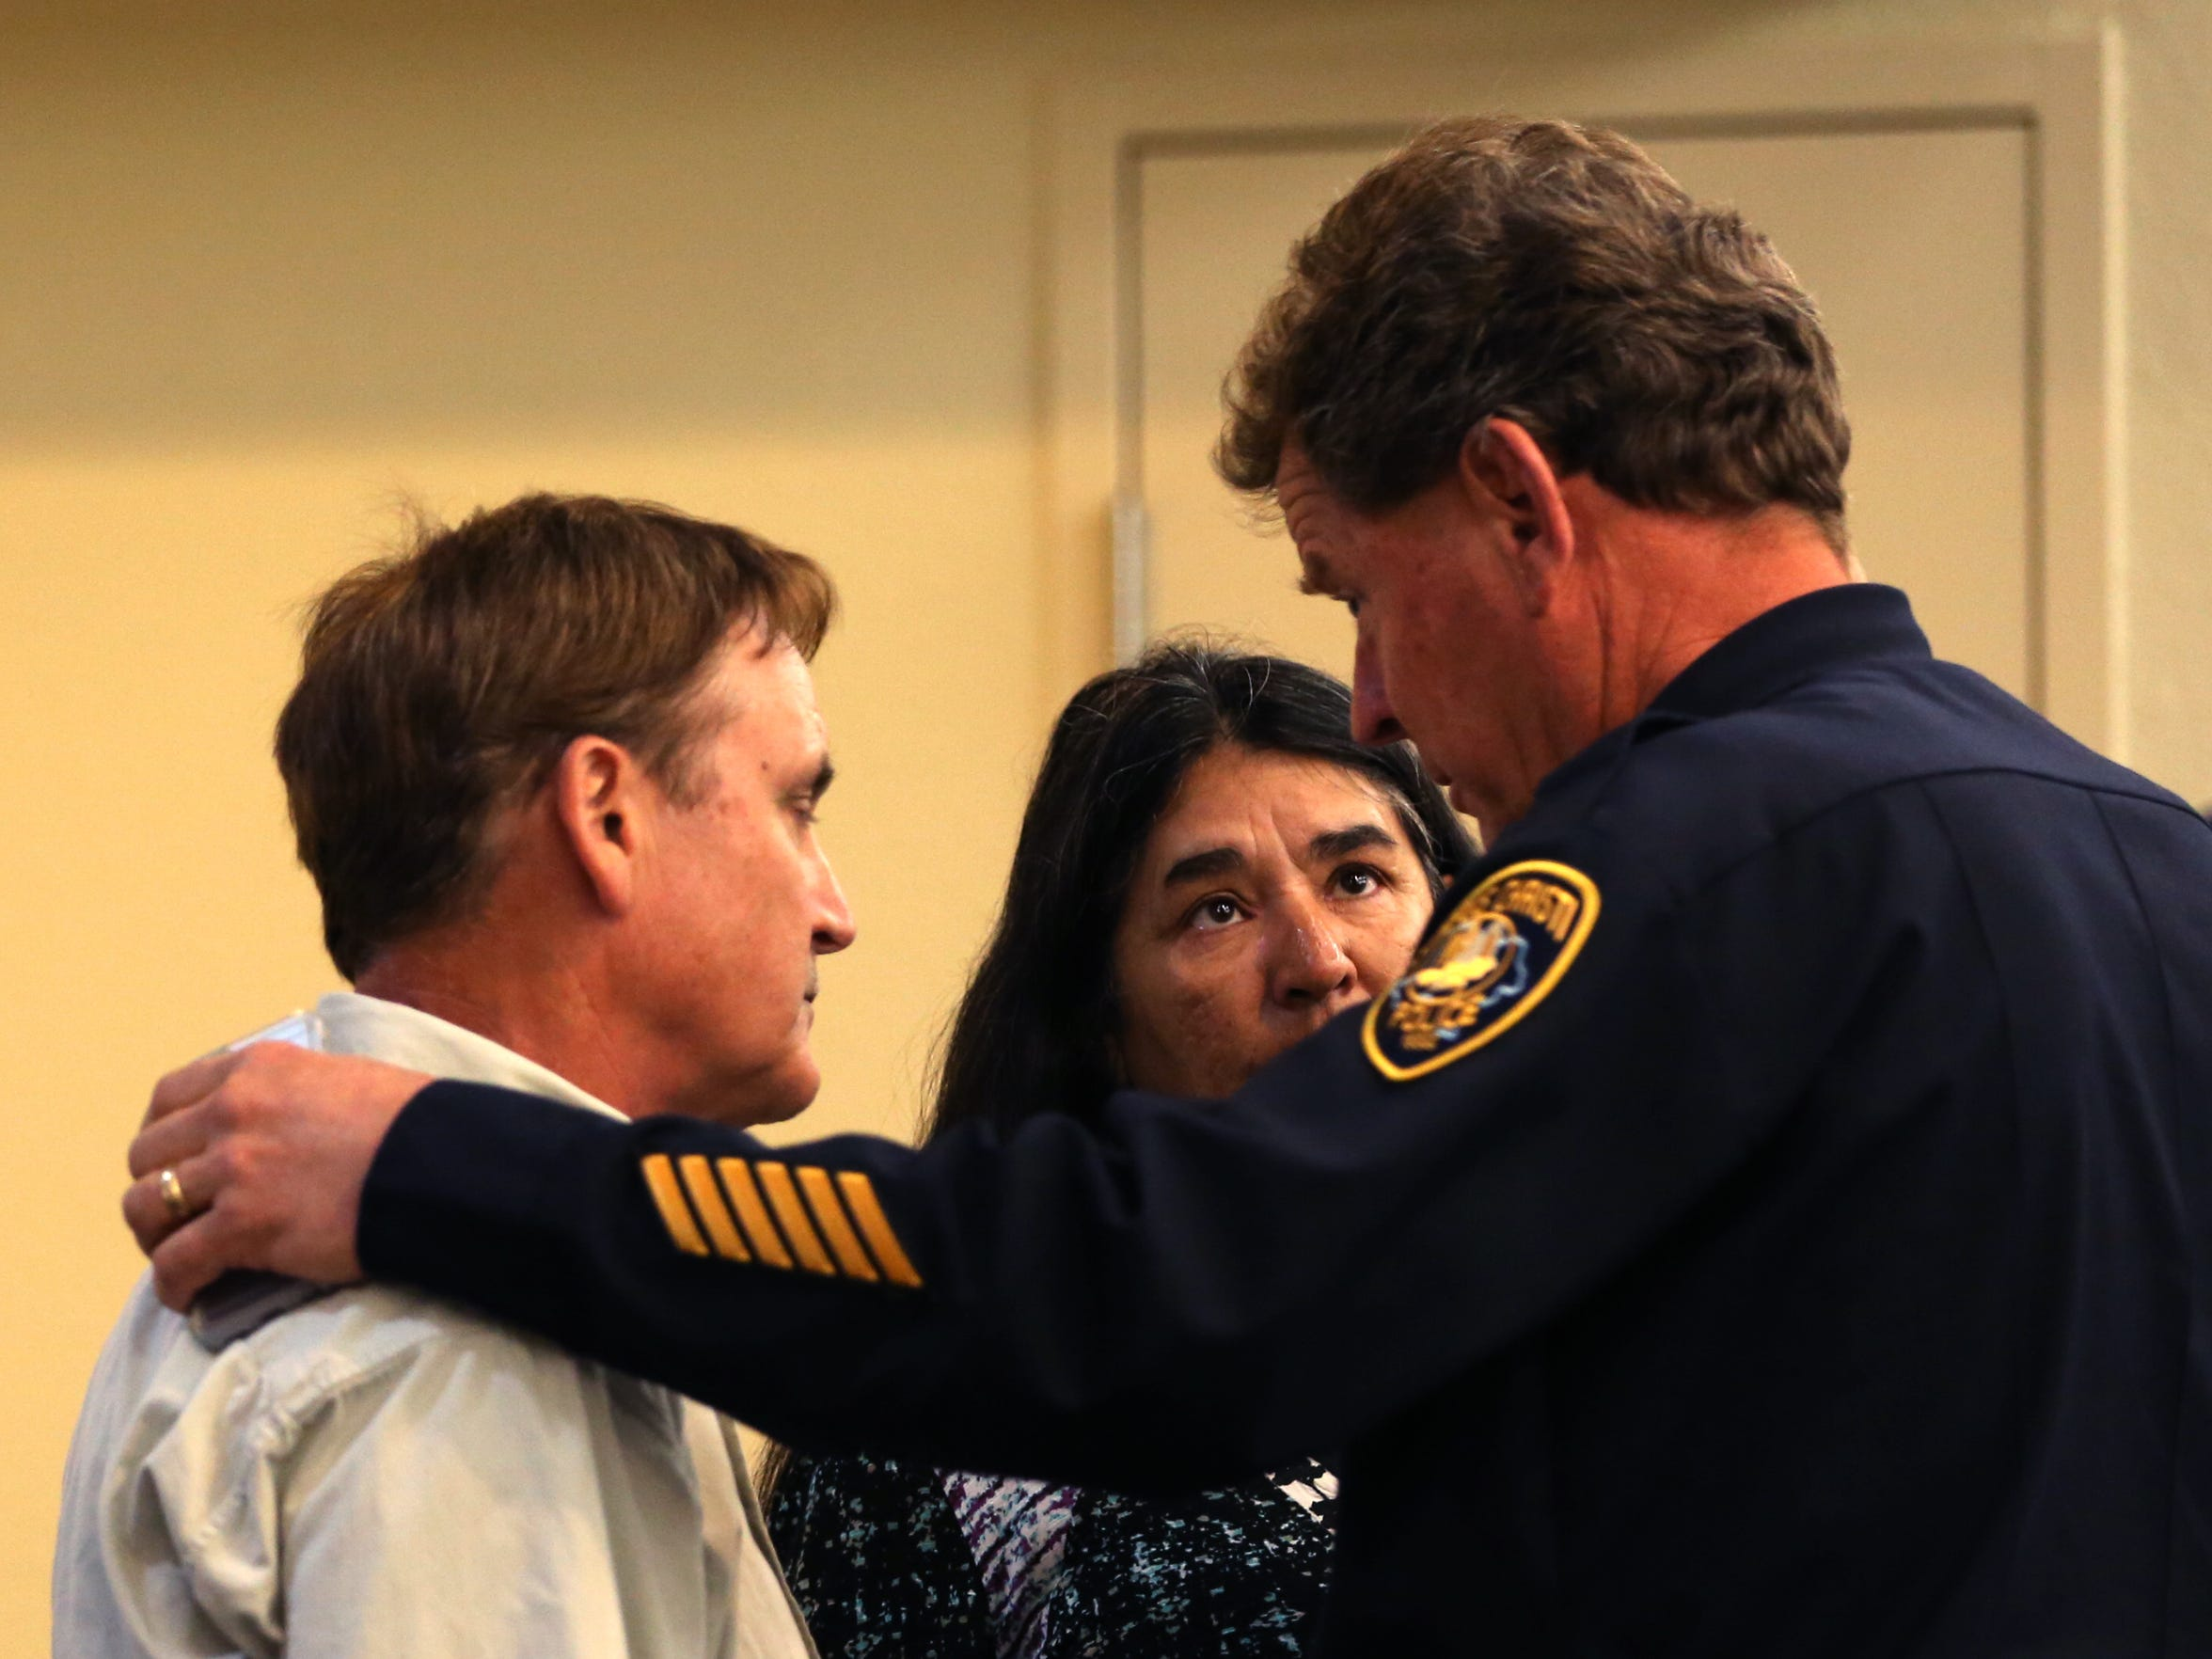 Gregg Fuqua (from left) and Sheila Fuqua talk with Lt. John Hooper following a press conference during which they made an appeal to the public on Tuesday, February 21, 2017, at the Corpus Christi Police Department that anyone who may have information about the January murder of their son, Andre Fuqua, come forward. Andre Fuqua, 25, was found inside a  black 2016 Subaru Crosstek on its side with gunshot wounds and died the next day at Christus Spohn Hospital Memorial, police said.